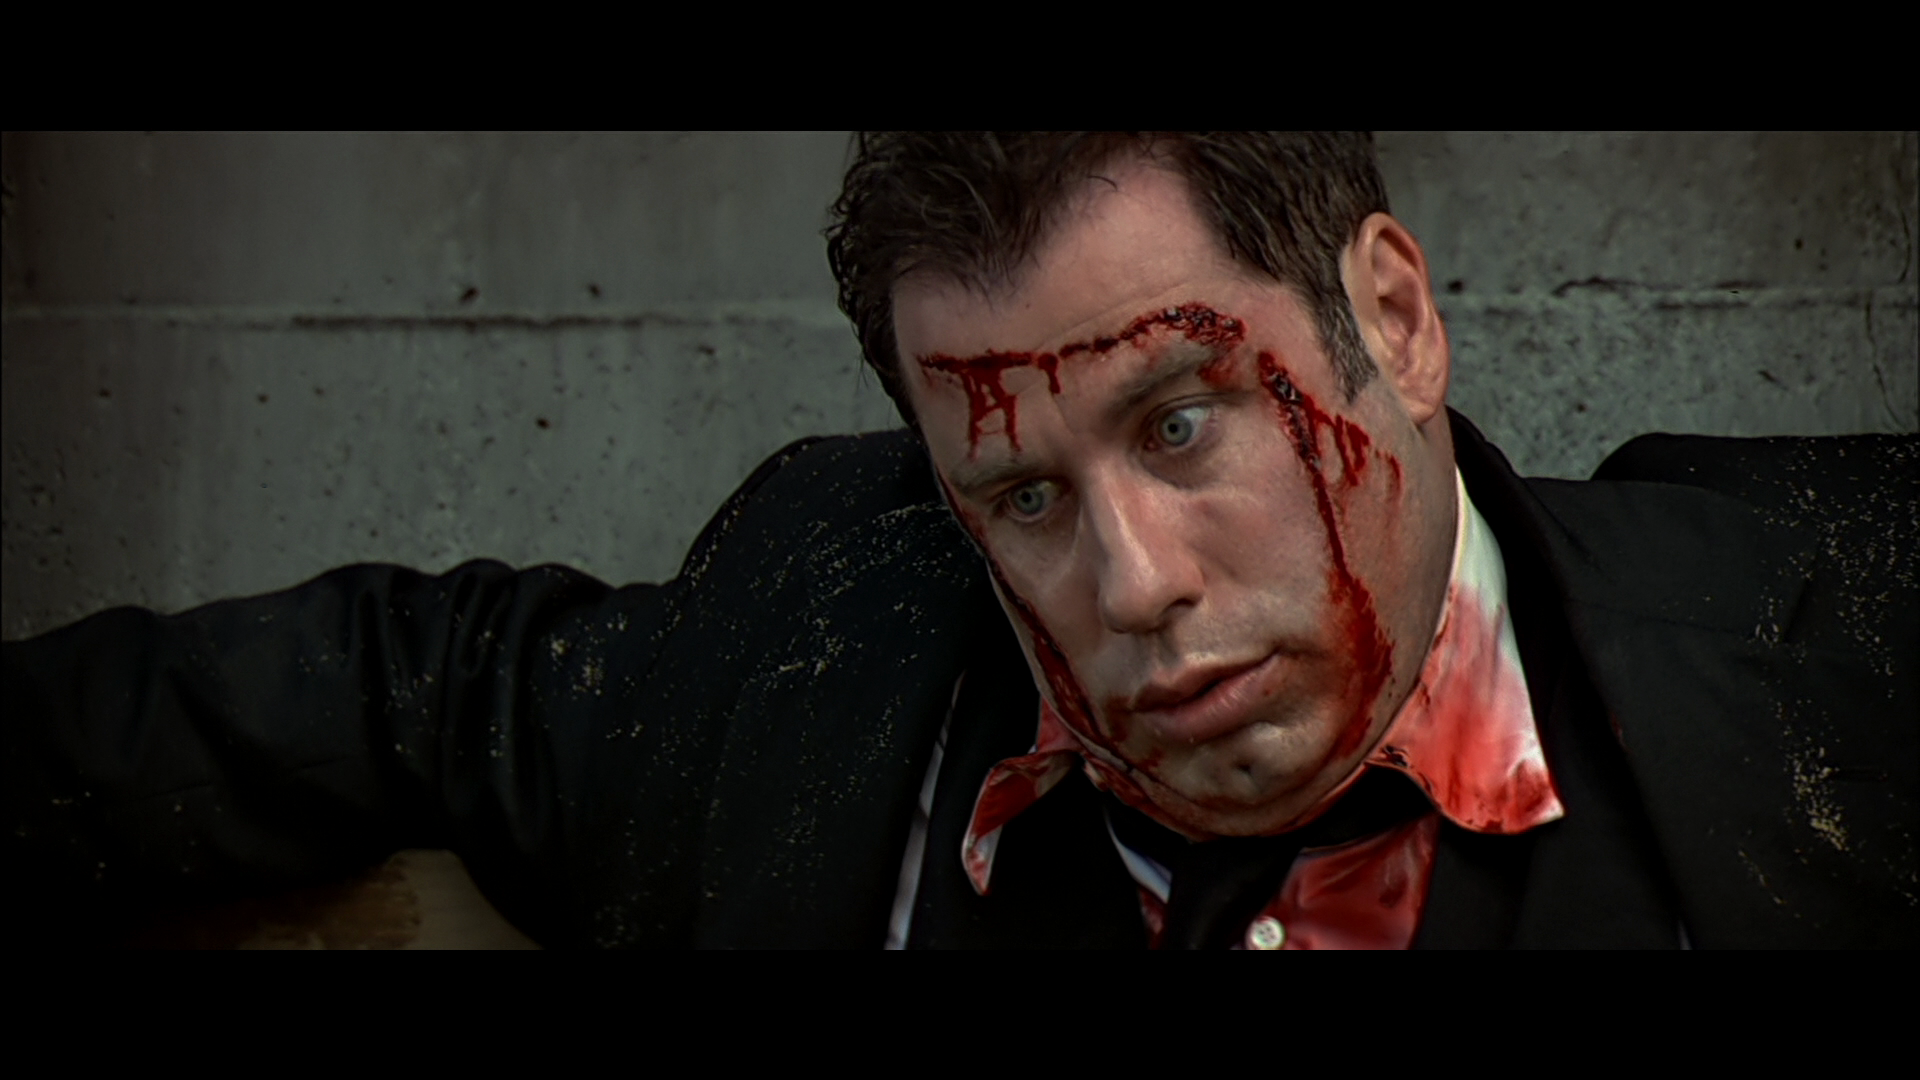 John Travolta in Face/Off